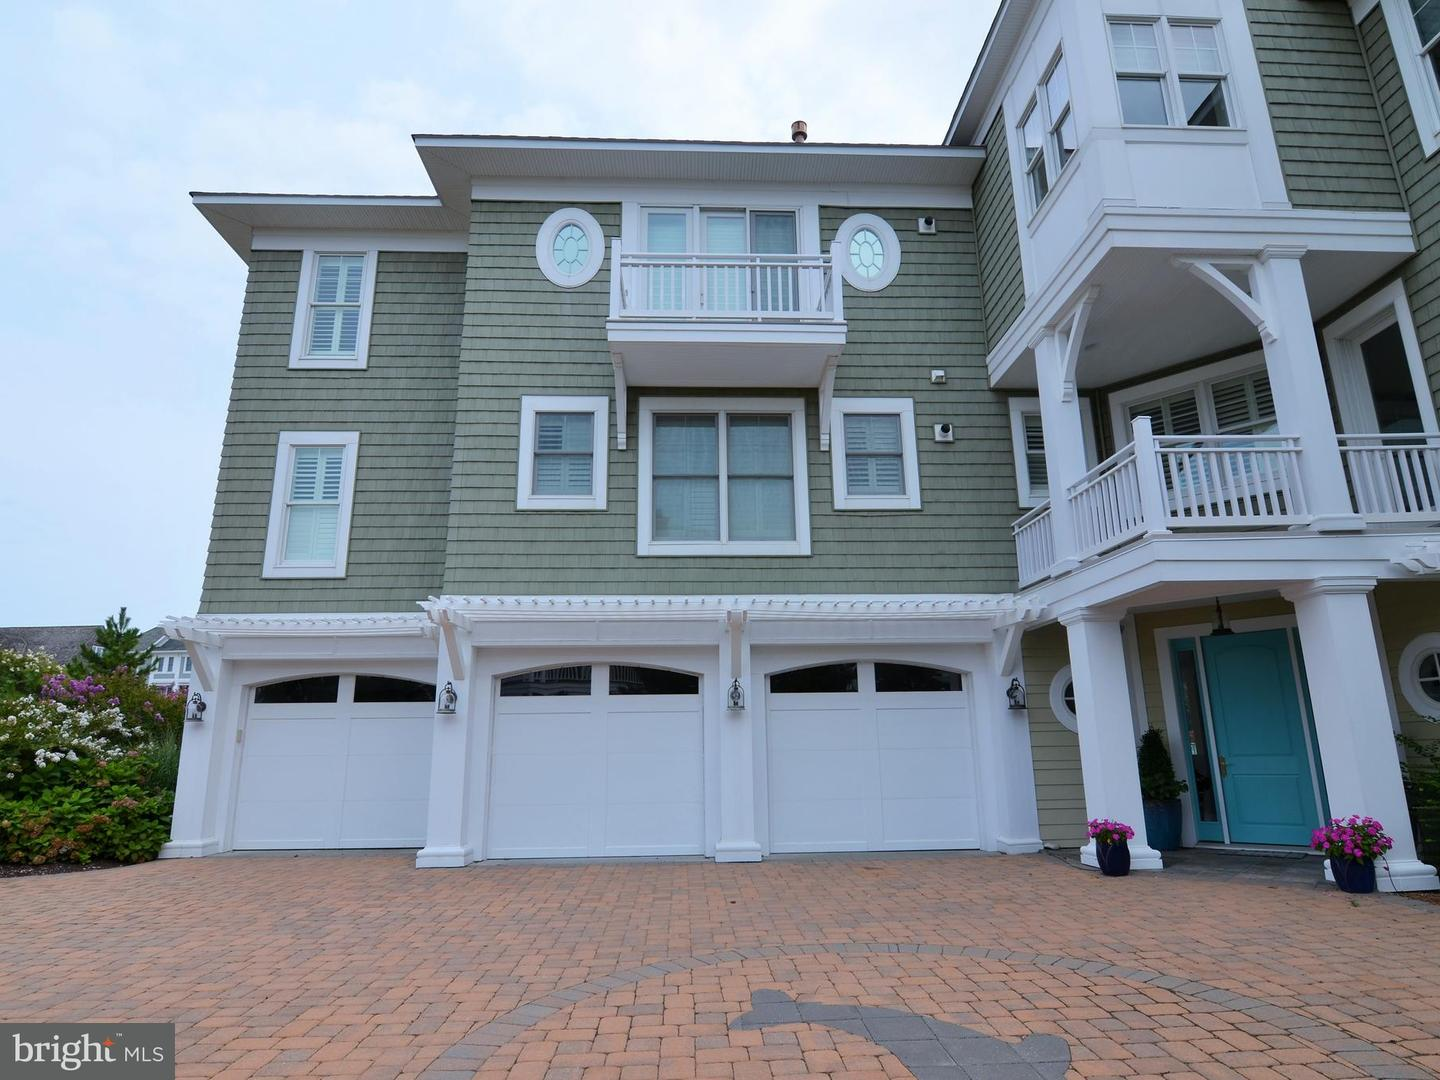 1002293530-300500805800-2018-09-25-15-08-24 31 Hall Ave | Rehoboth Beach, De Real Estate For Sale | MLS# 1002293530  - Suzanne Macnab